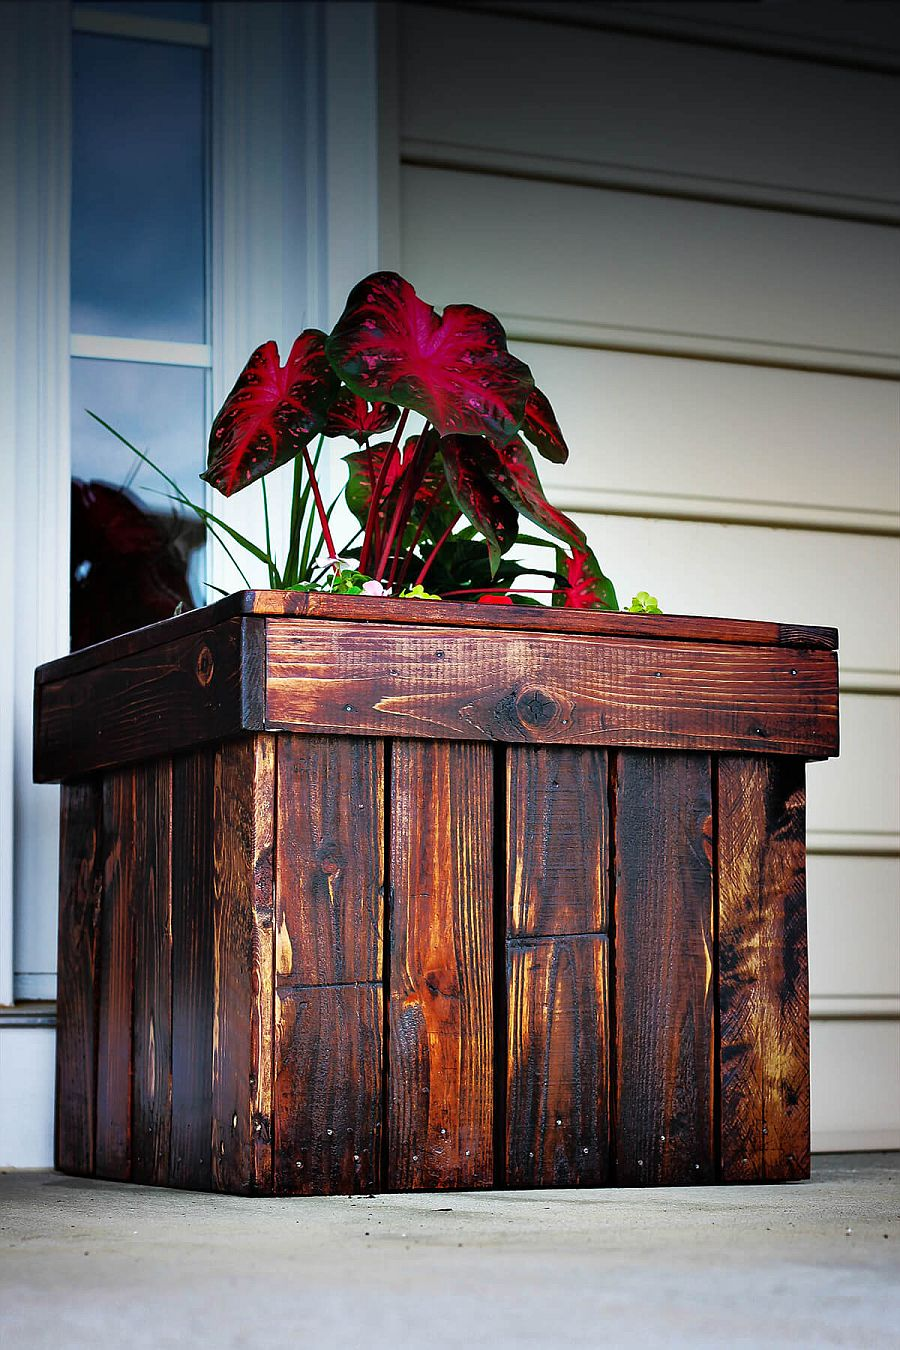 It is the strain of the wood that adds even more charm to the DIY planter design